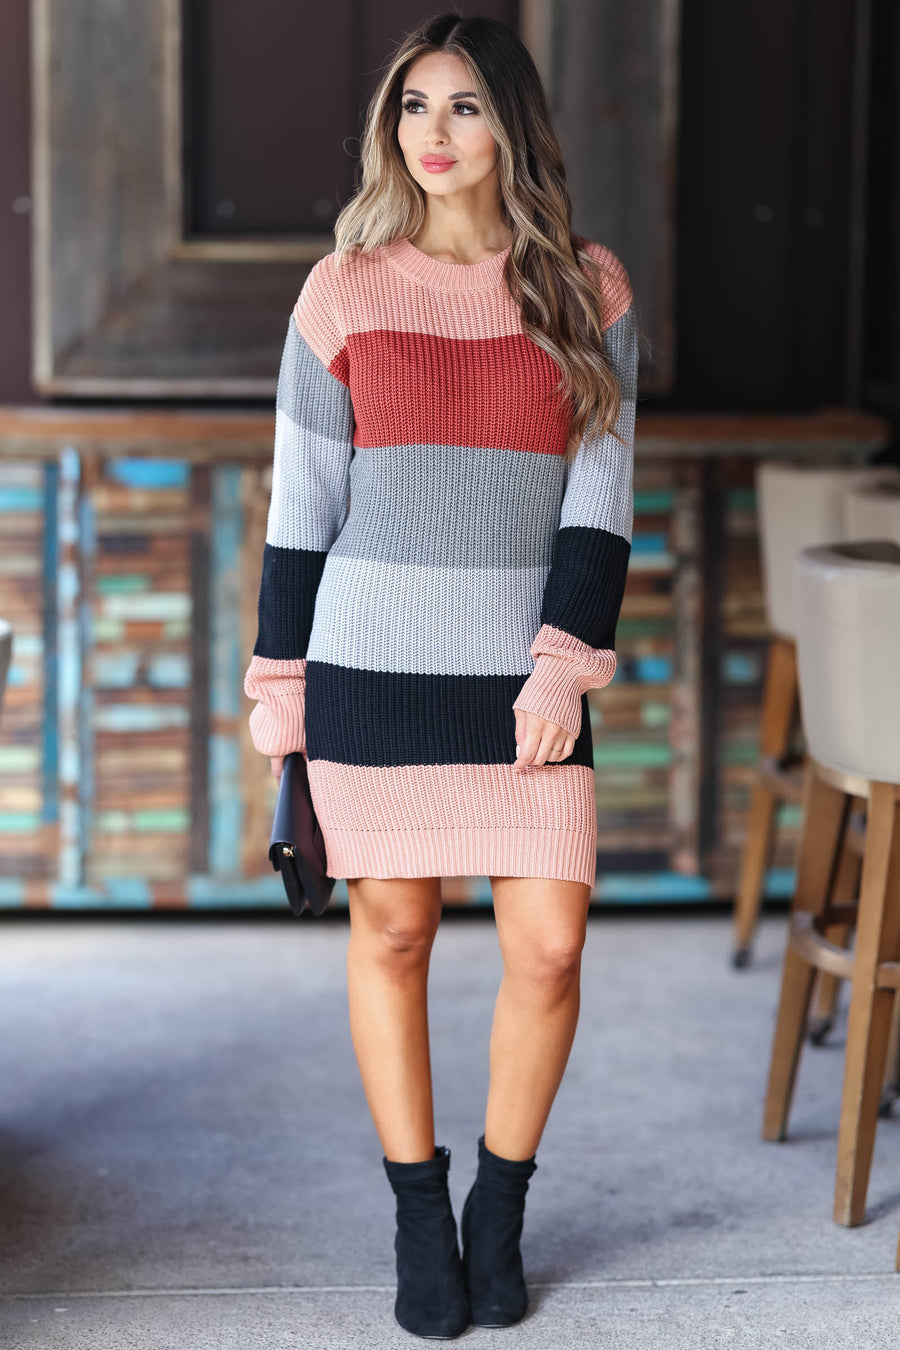 CBRAND Self Made Color Block Sweater Dress - Rose womens trendy round neckline knit dress closet candy front